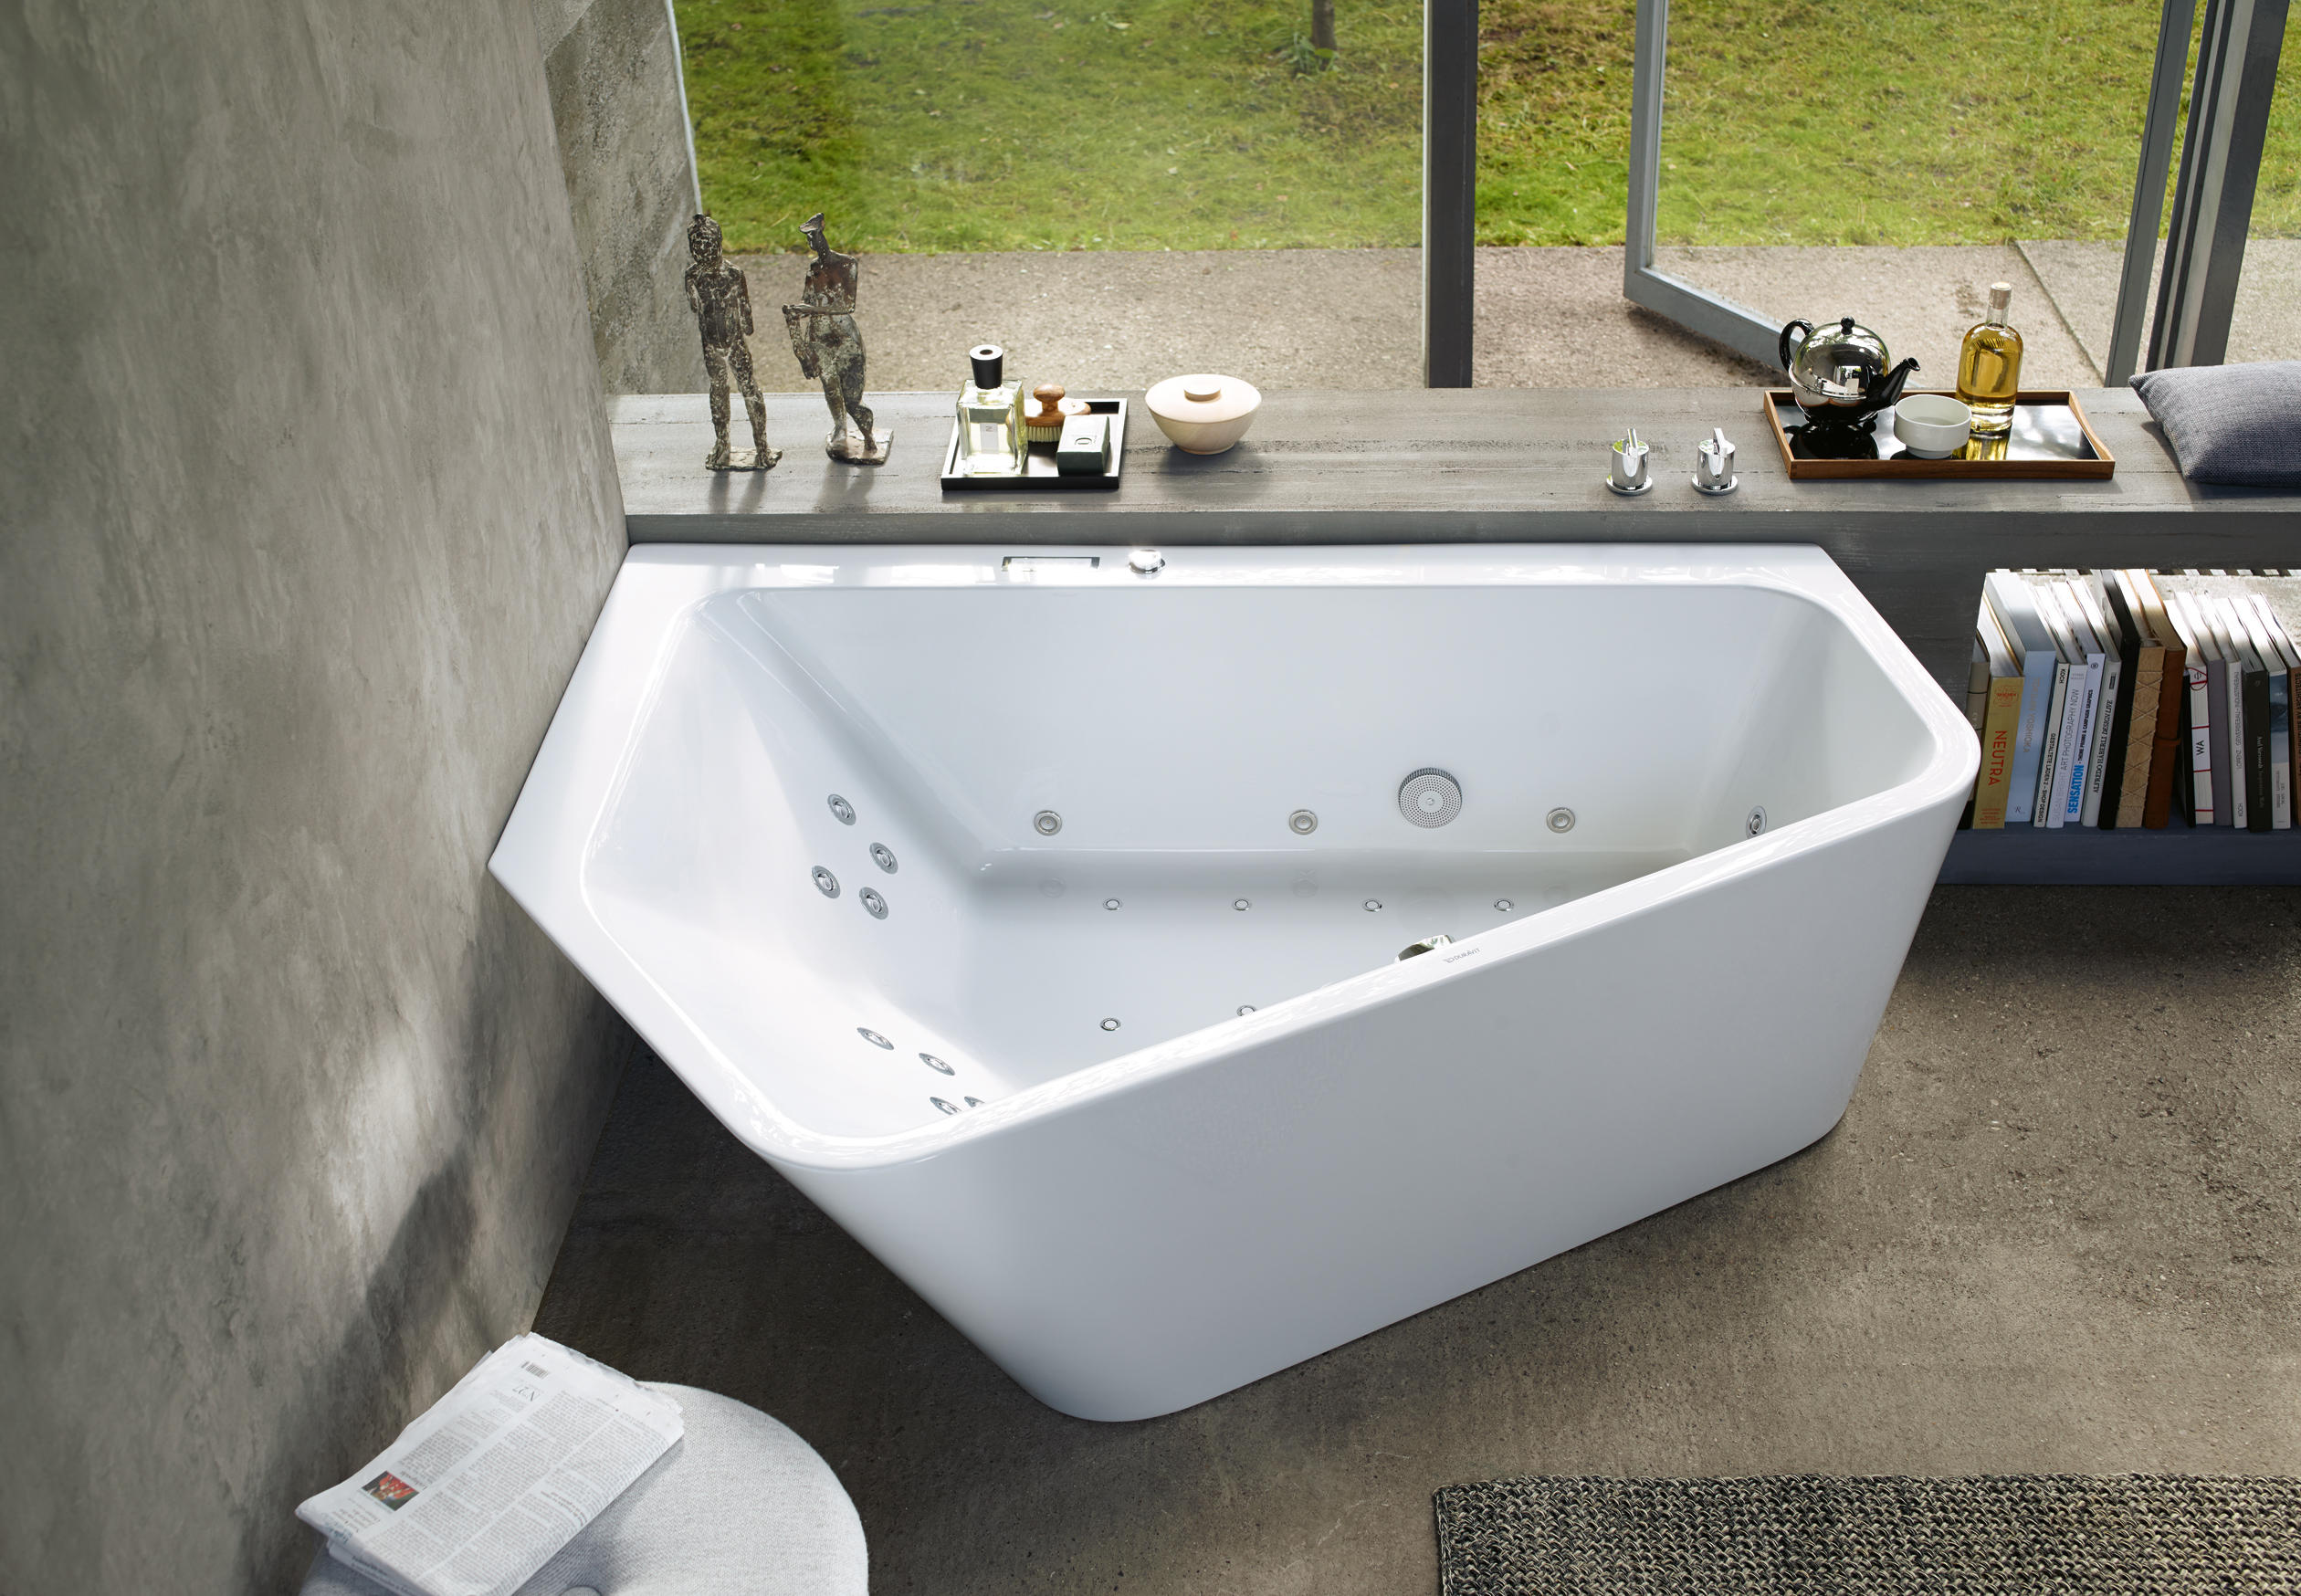 taps frame l duravit image support bath additional with furniture htm of tub ended vero x bathroom double shower